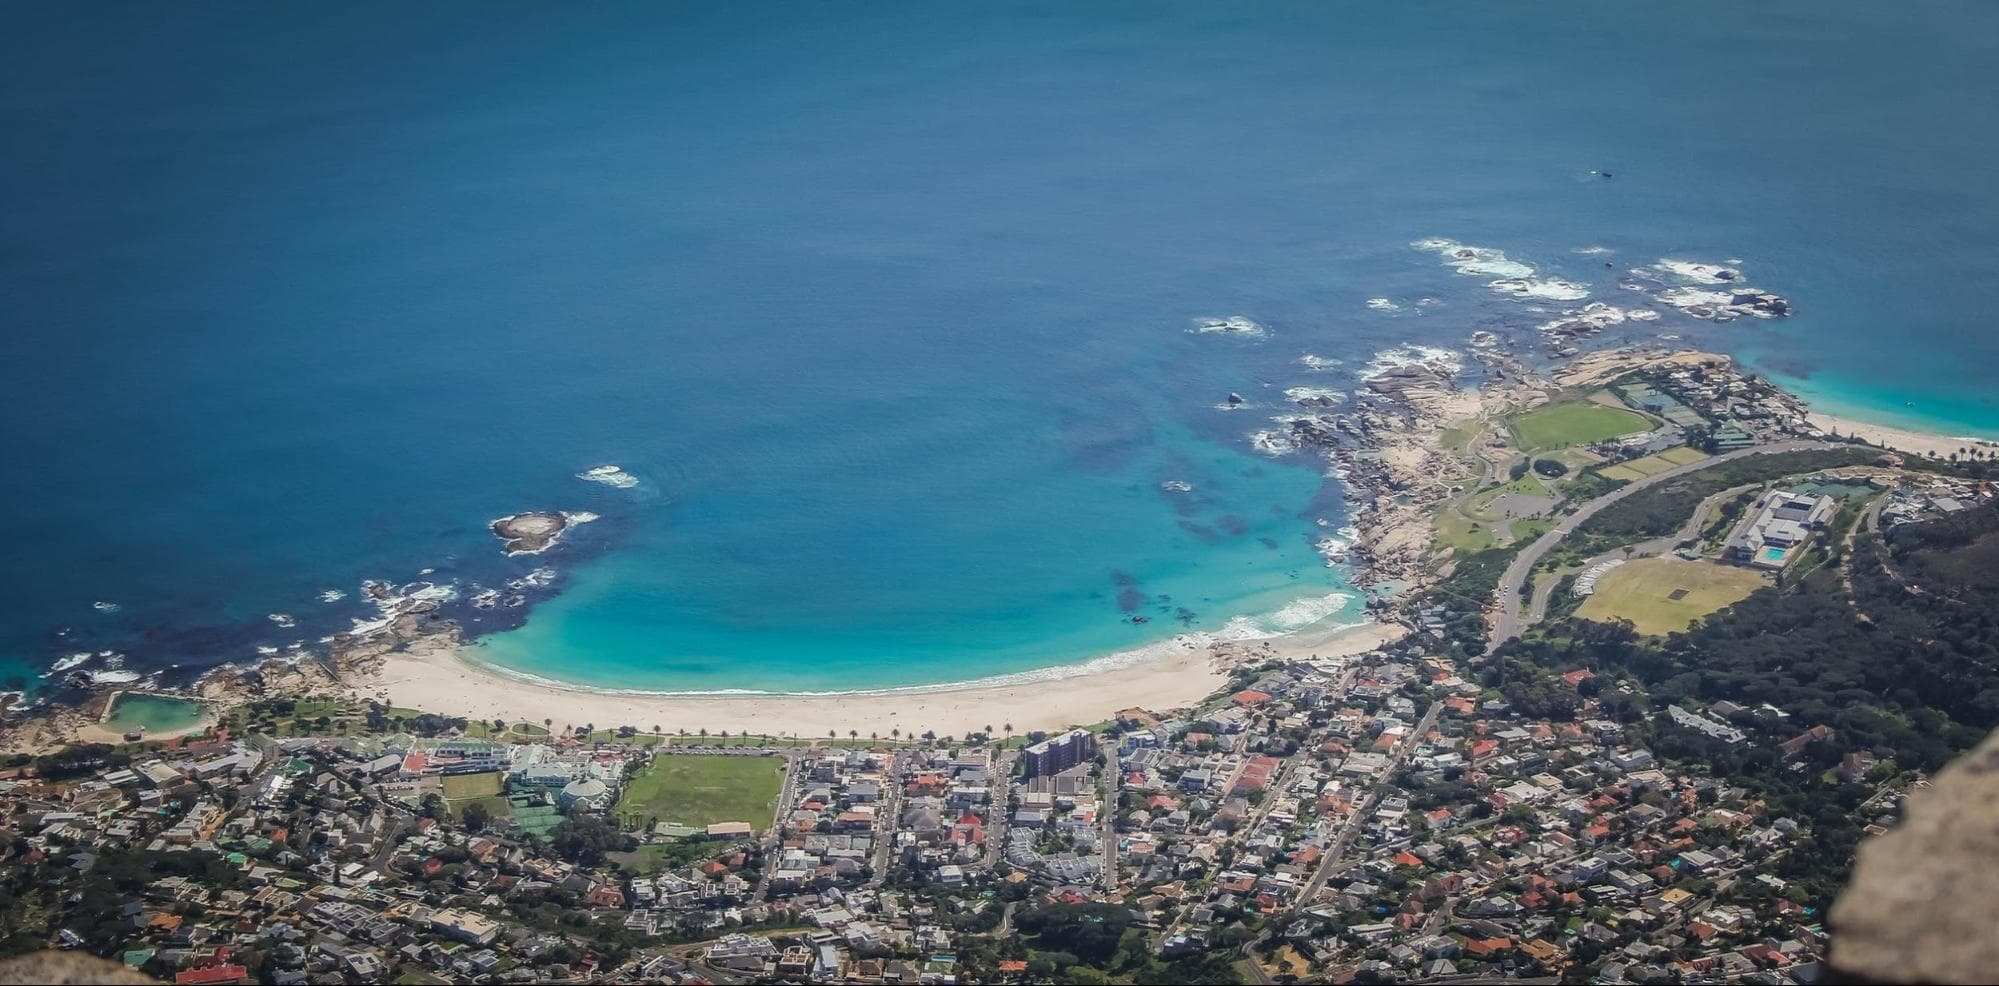 Camps Bay beach from above, with Clifton 4 in the right corner